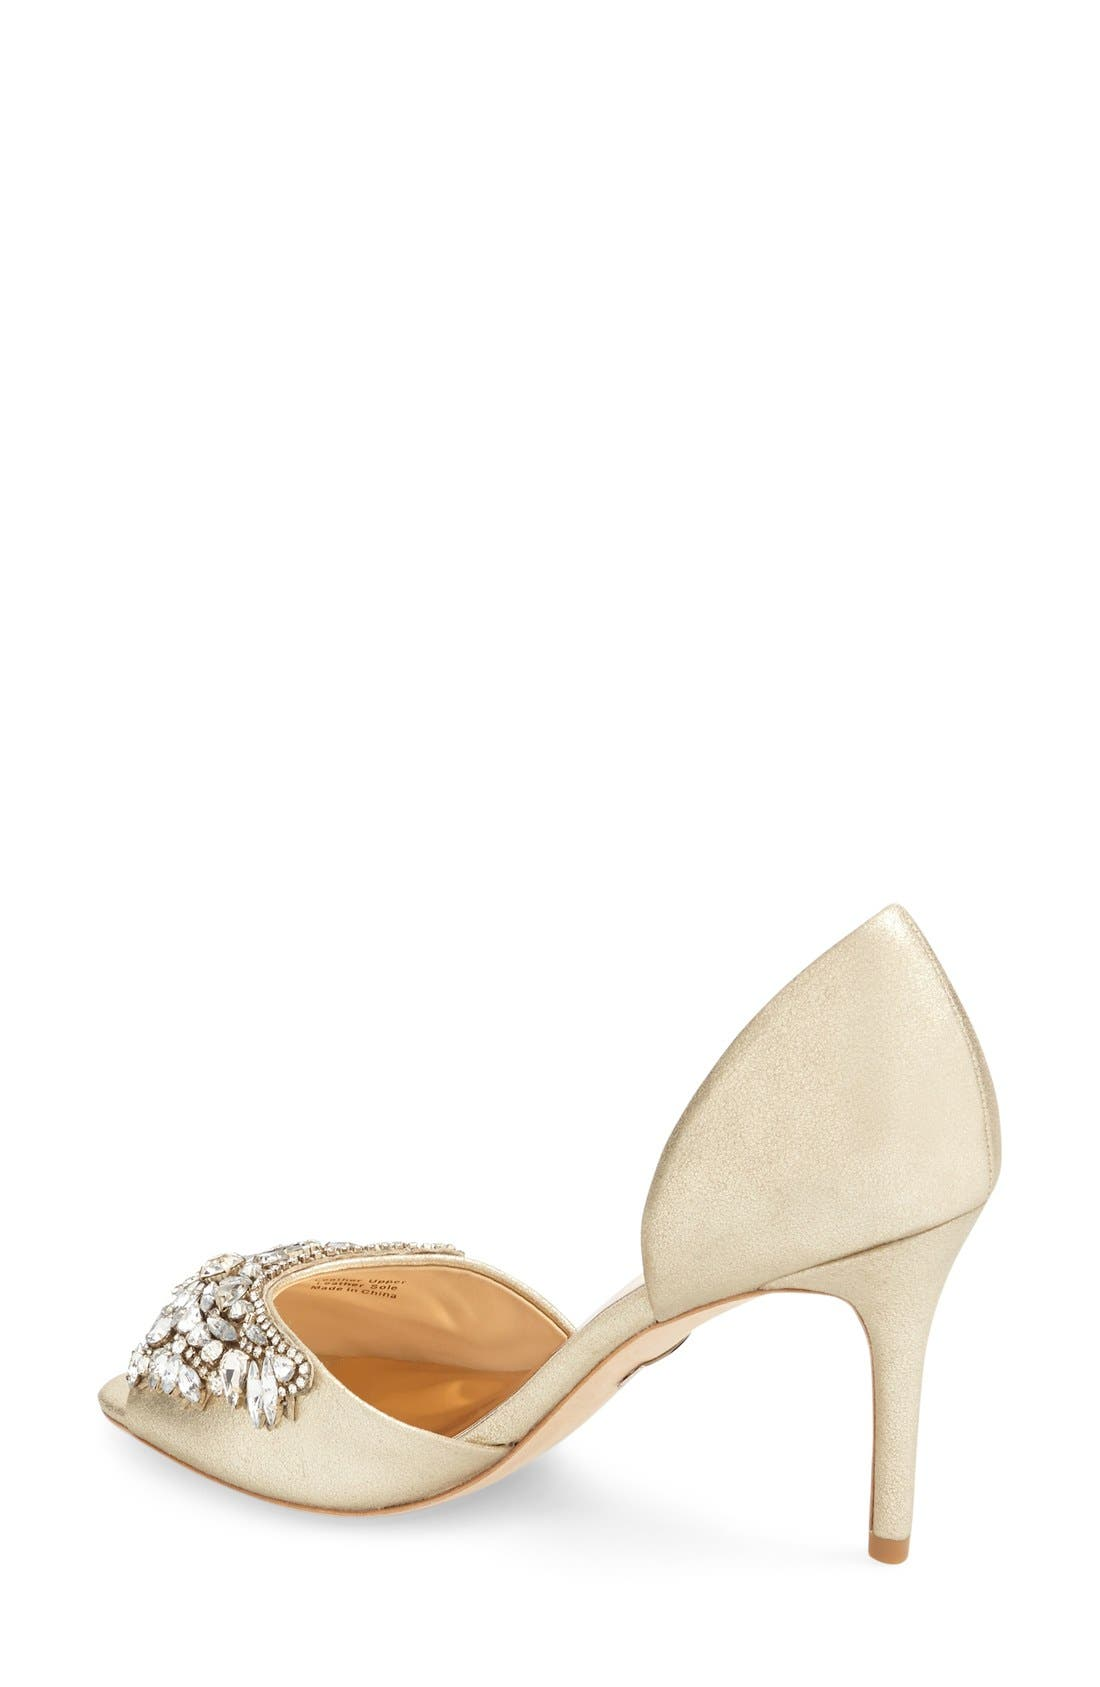 BADGLEY MISCHKA COLLECTION, Badgley Mischka 'Candance' Crystal Embellished d'Orsay Pump, Alternate thumbnail 3, color, 040